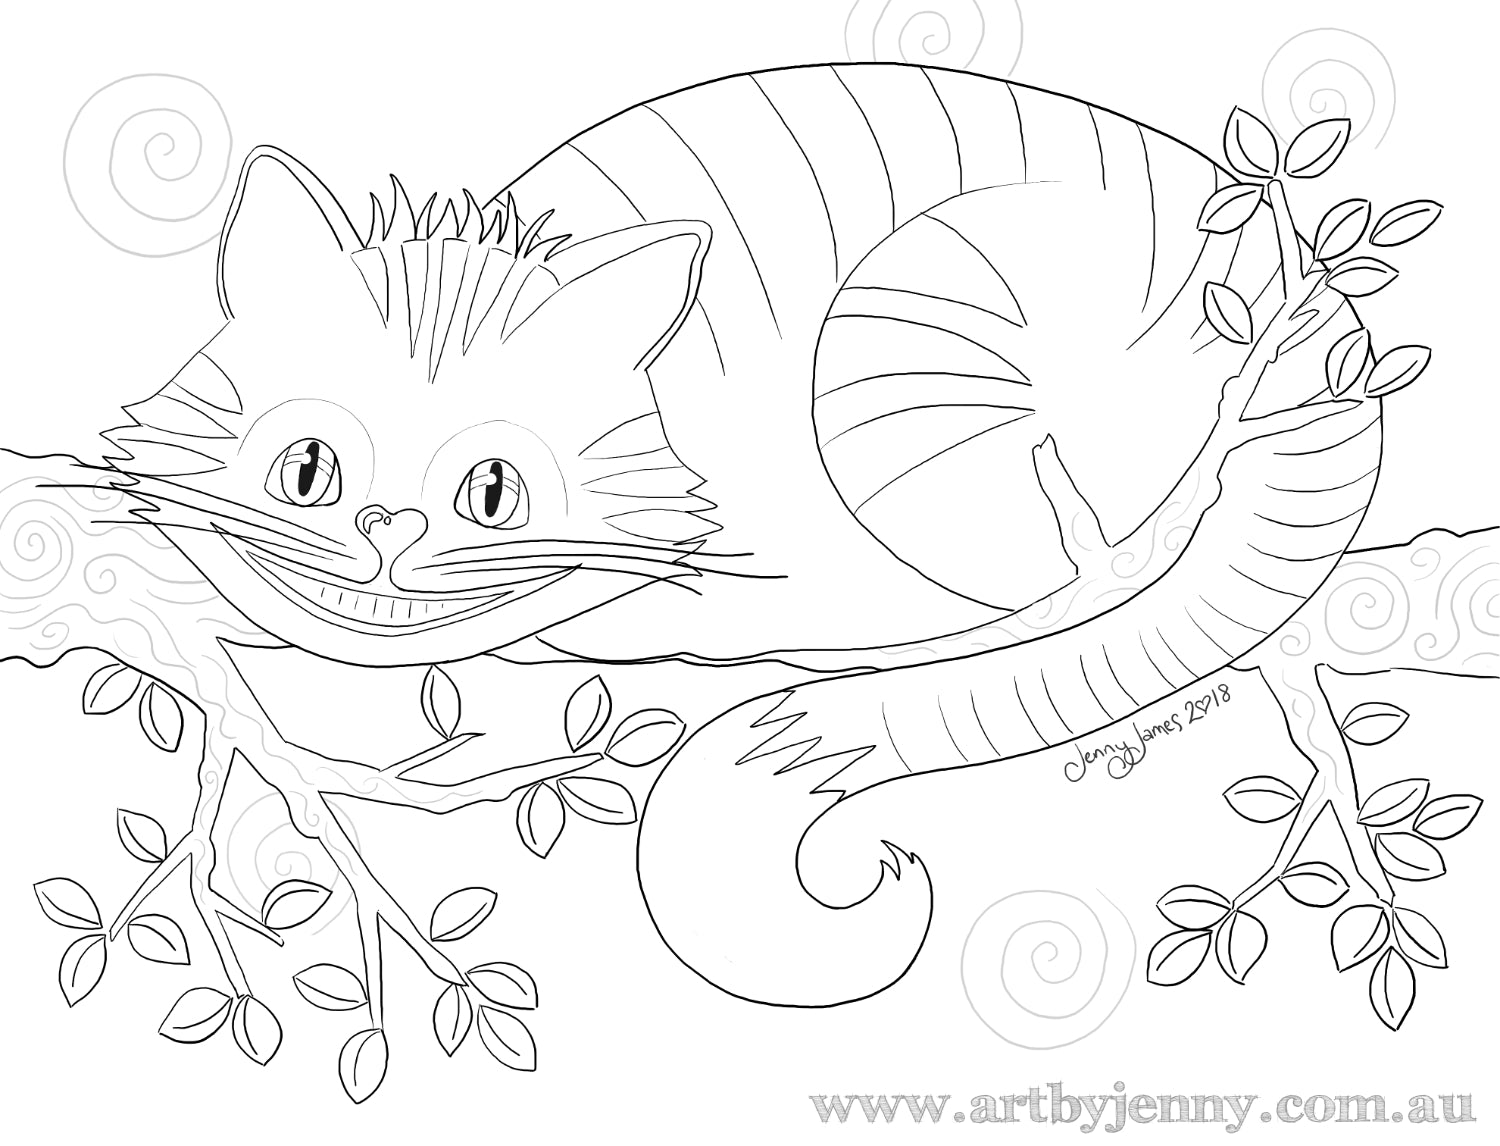 The Magical Cheshire Cat Free Template To Colour And Paint Art